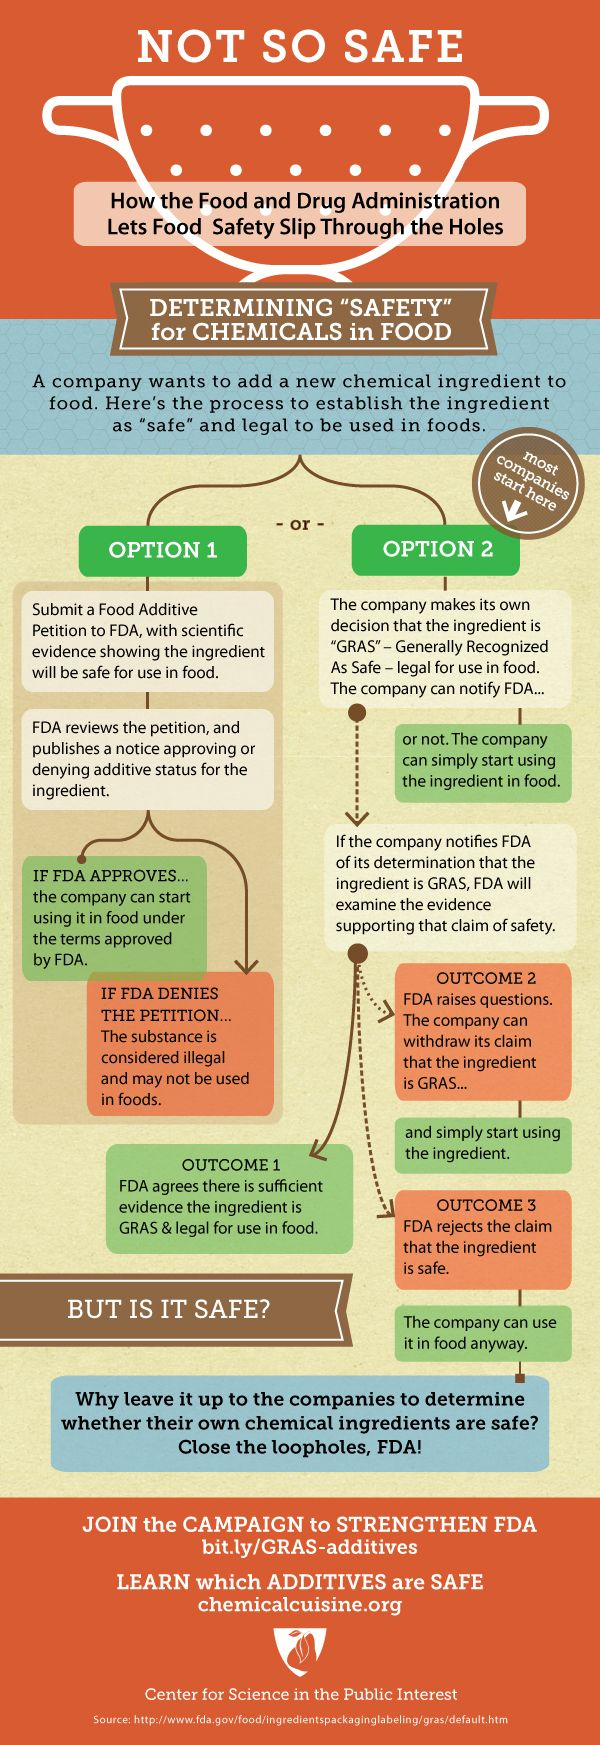 best images about haccp food safety hospital nutrition mother earth living check out this great infographic from center for science in the public interest cspi on the fda s food safety loopholes